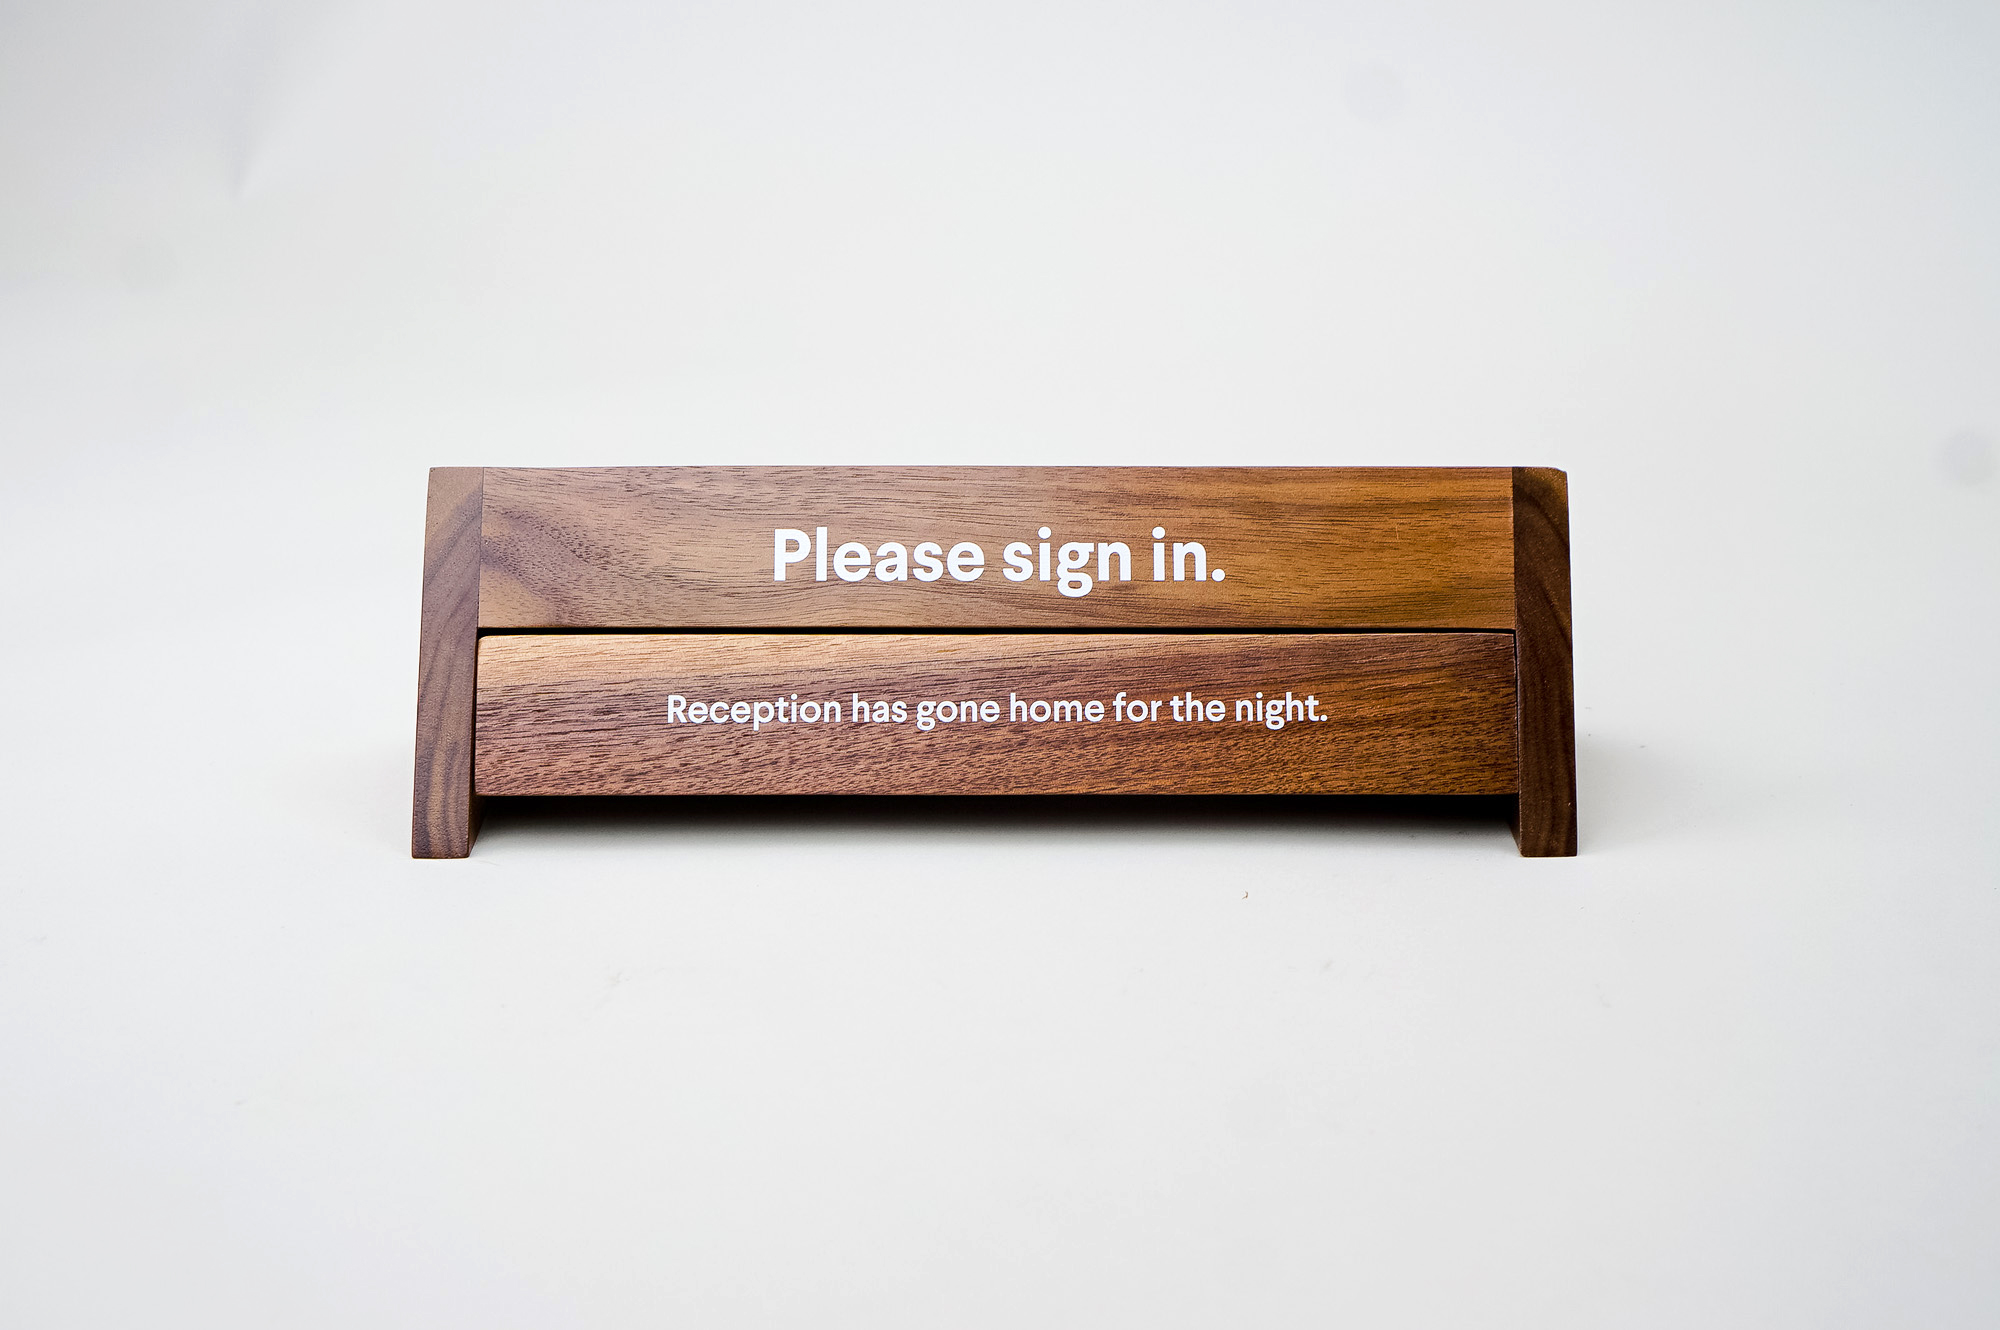 Rotating wood reception sign with various away messages for Slack, an American cloud-based set of team collaboration tools and services.